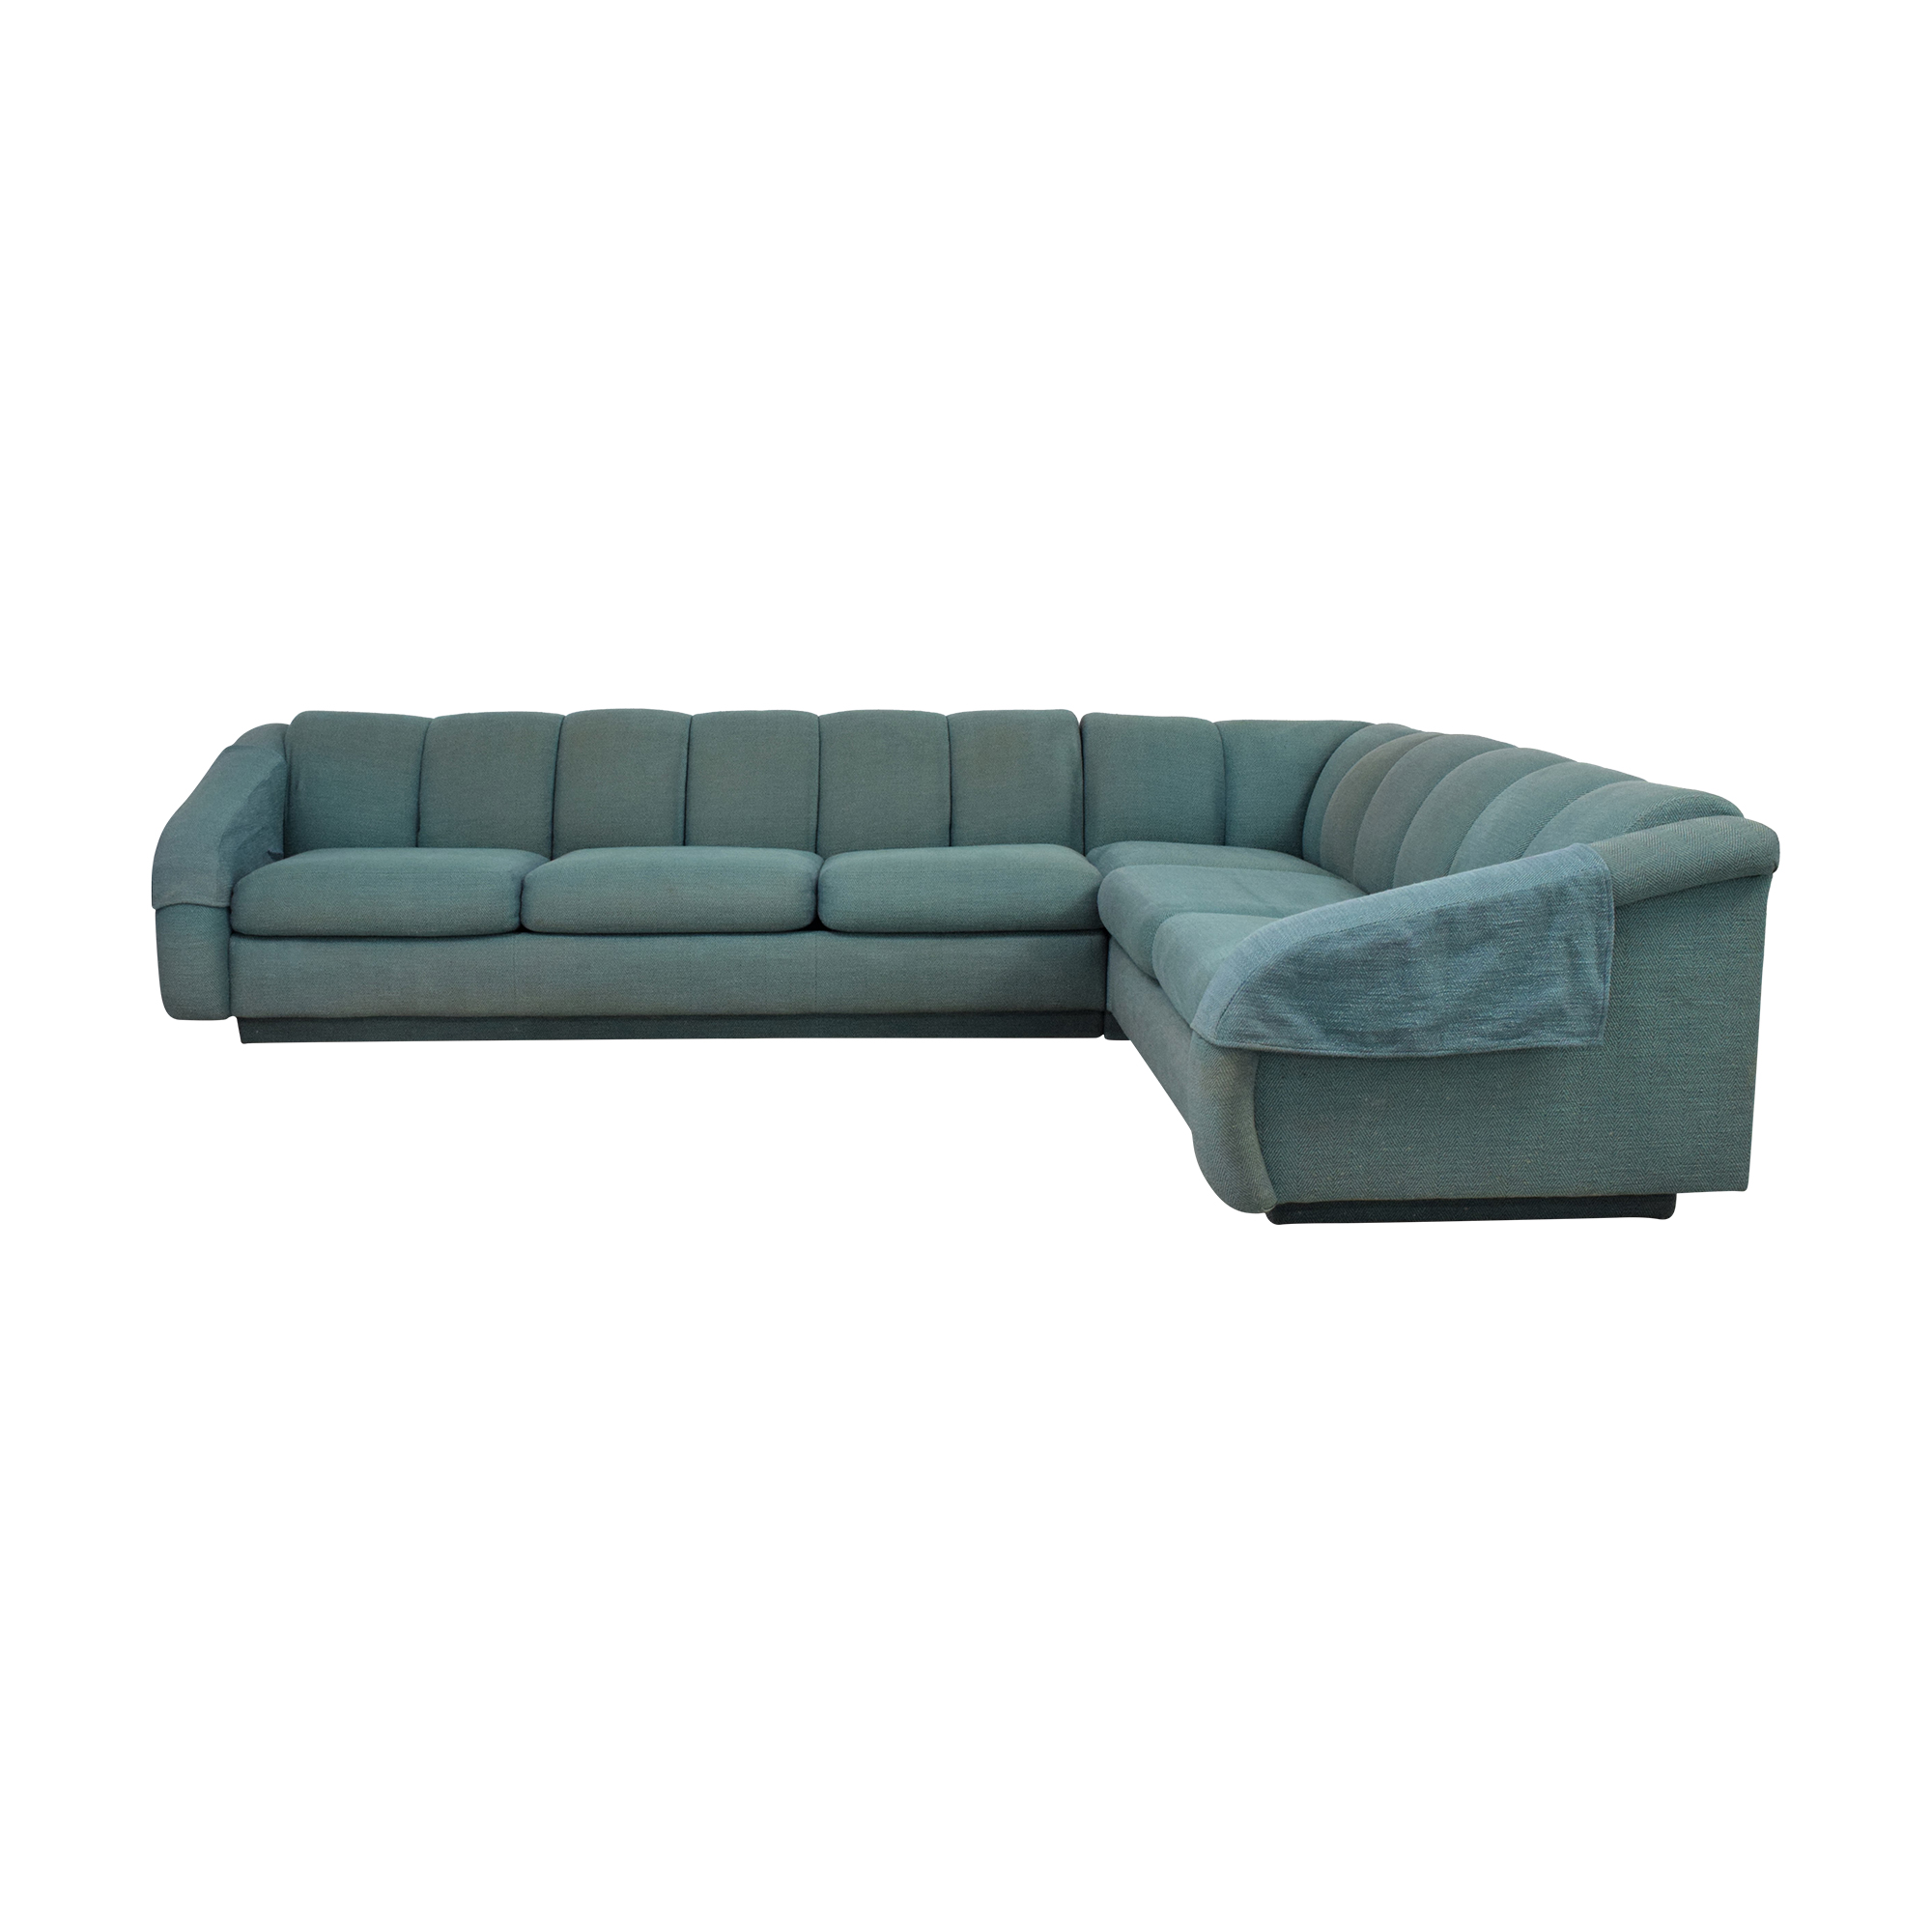 shop Directional Furniture Sectional Sofa Directional Furniture Sectionals